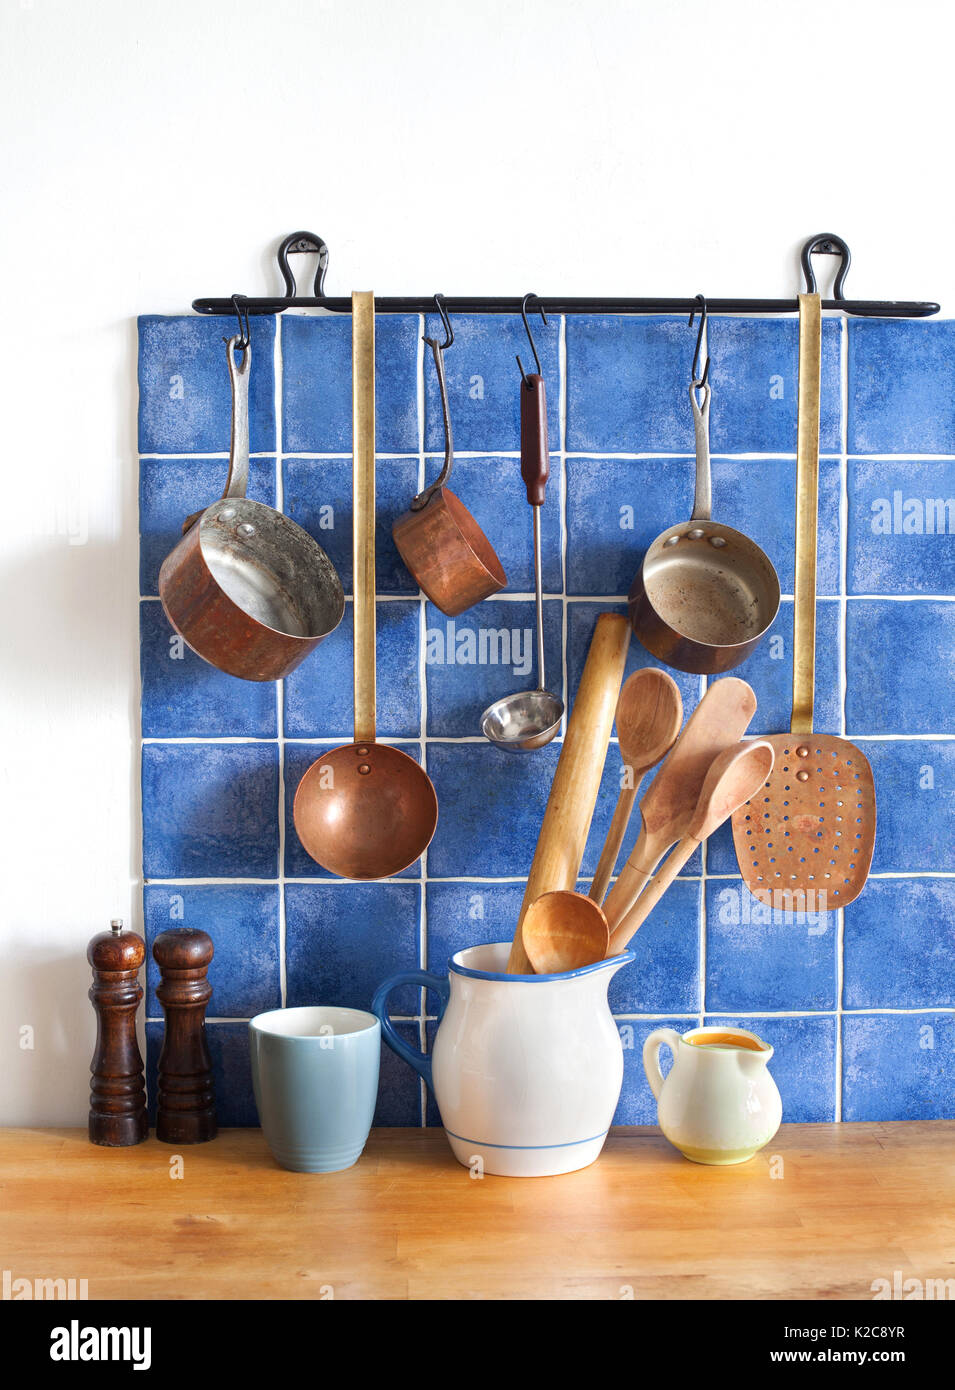 Retro design kitchen interior with accessories. Hanging copper kitchenware set. Pot, stewpot, spoon, skimmer, ladle. Different sizes pitchers, cup. wooden table. Blue tiles background - Stock Image